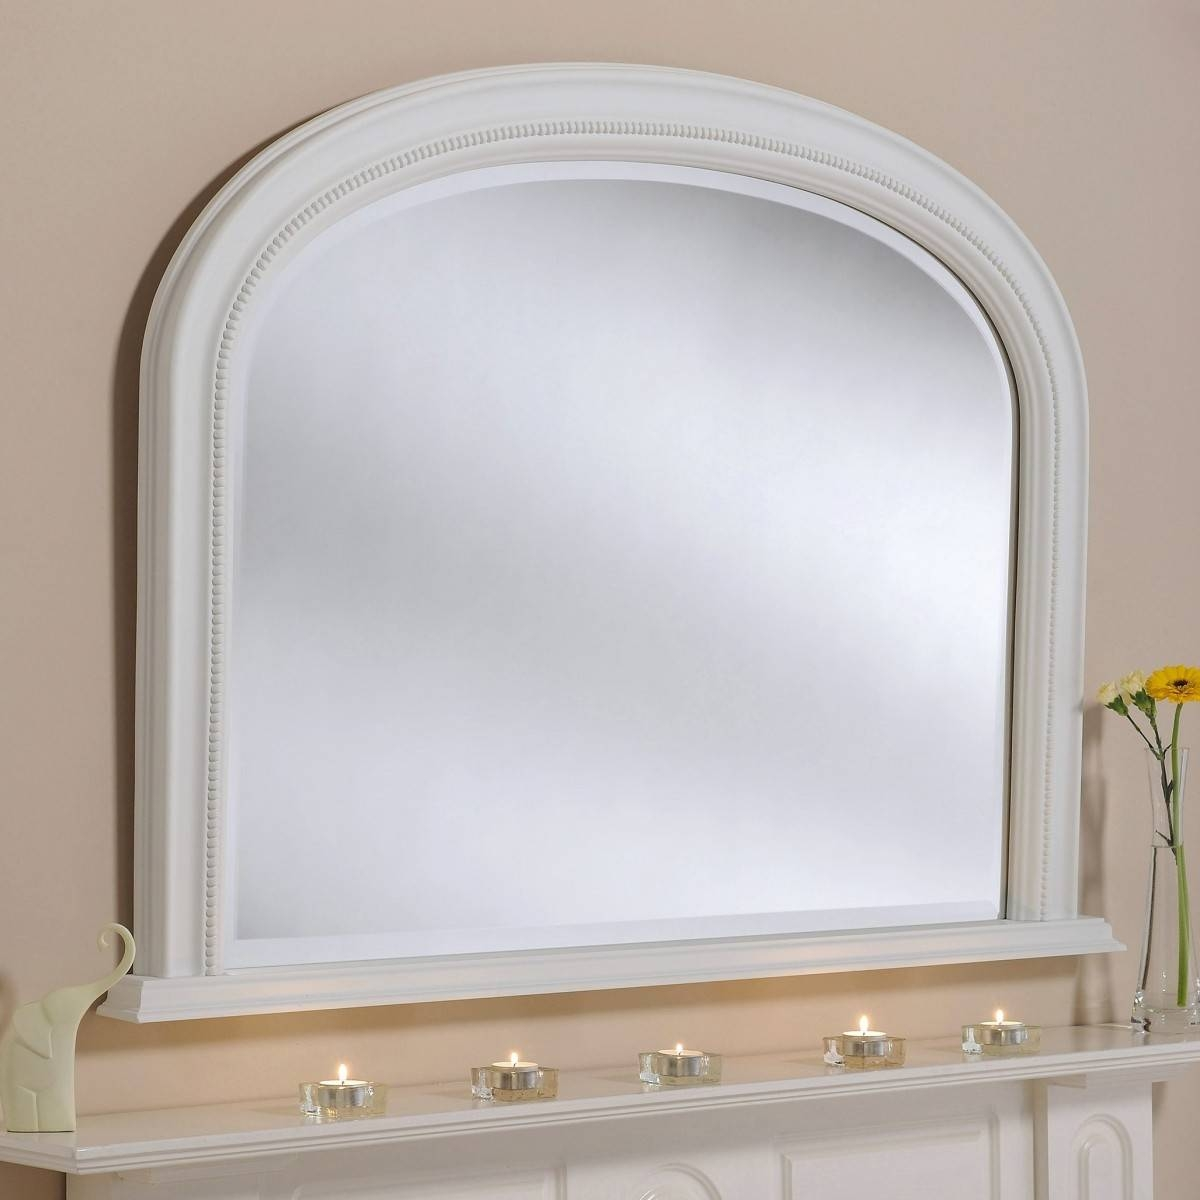 Belle Overmantle Mirror From £269 – Luxury Overmantle Mirrors Throughout White Overmantle Mirrors (View 14 of 15)